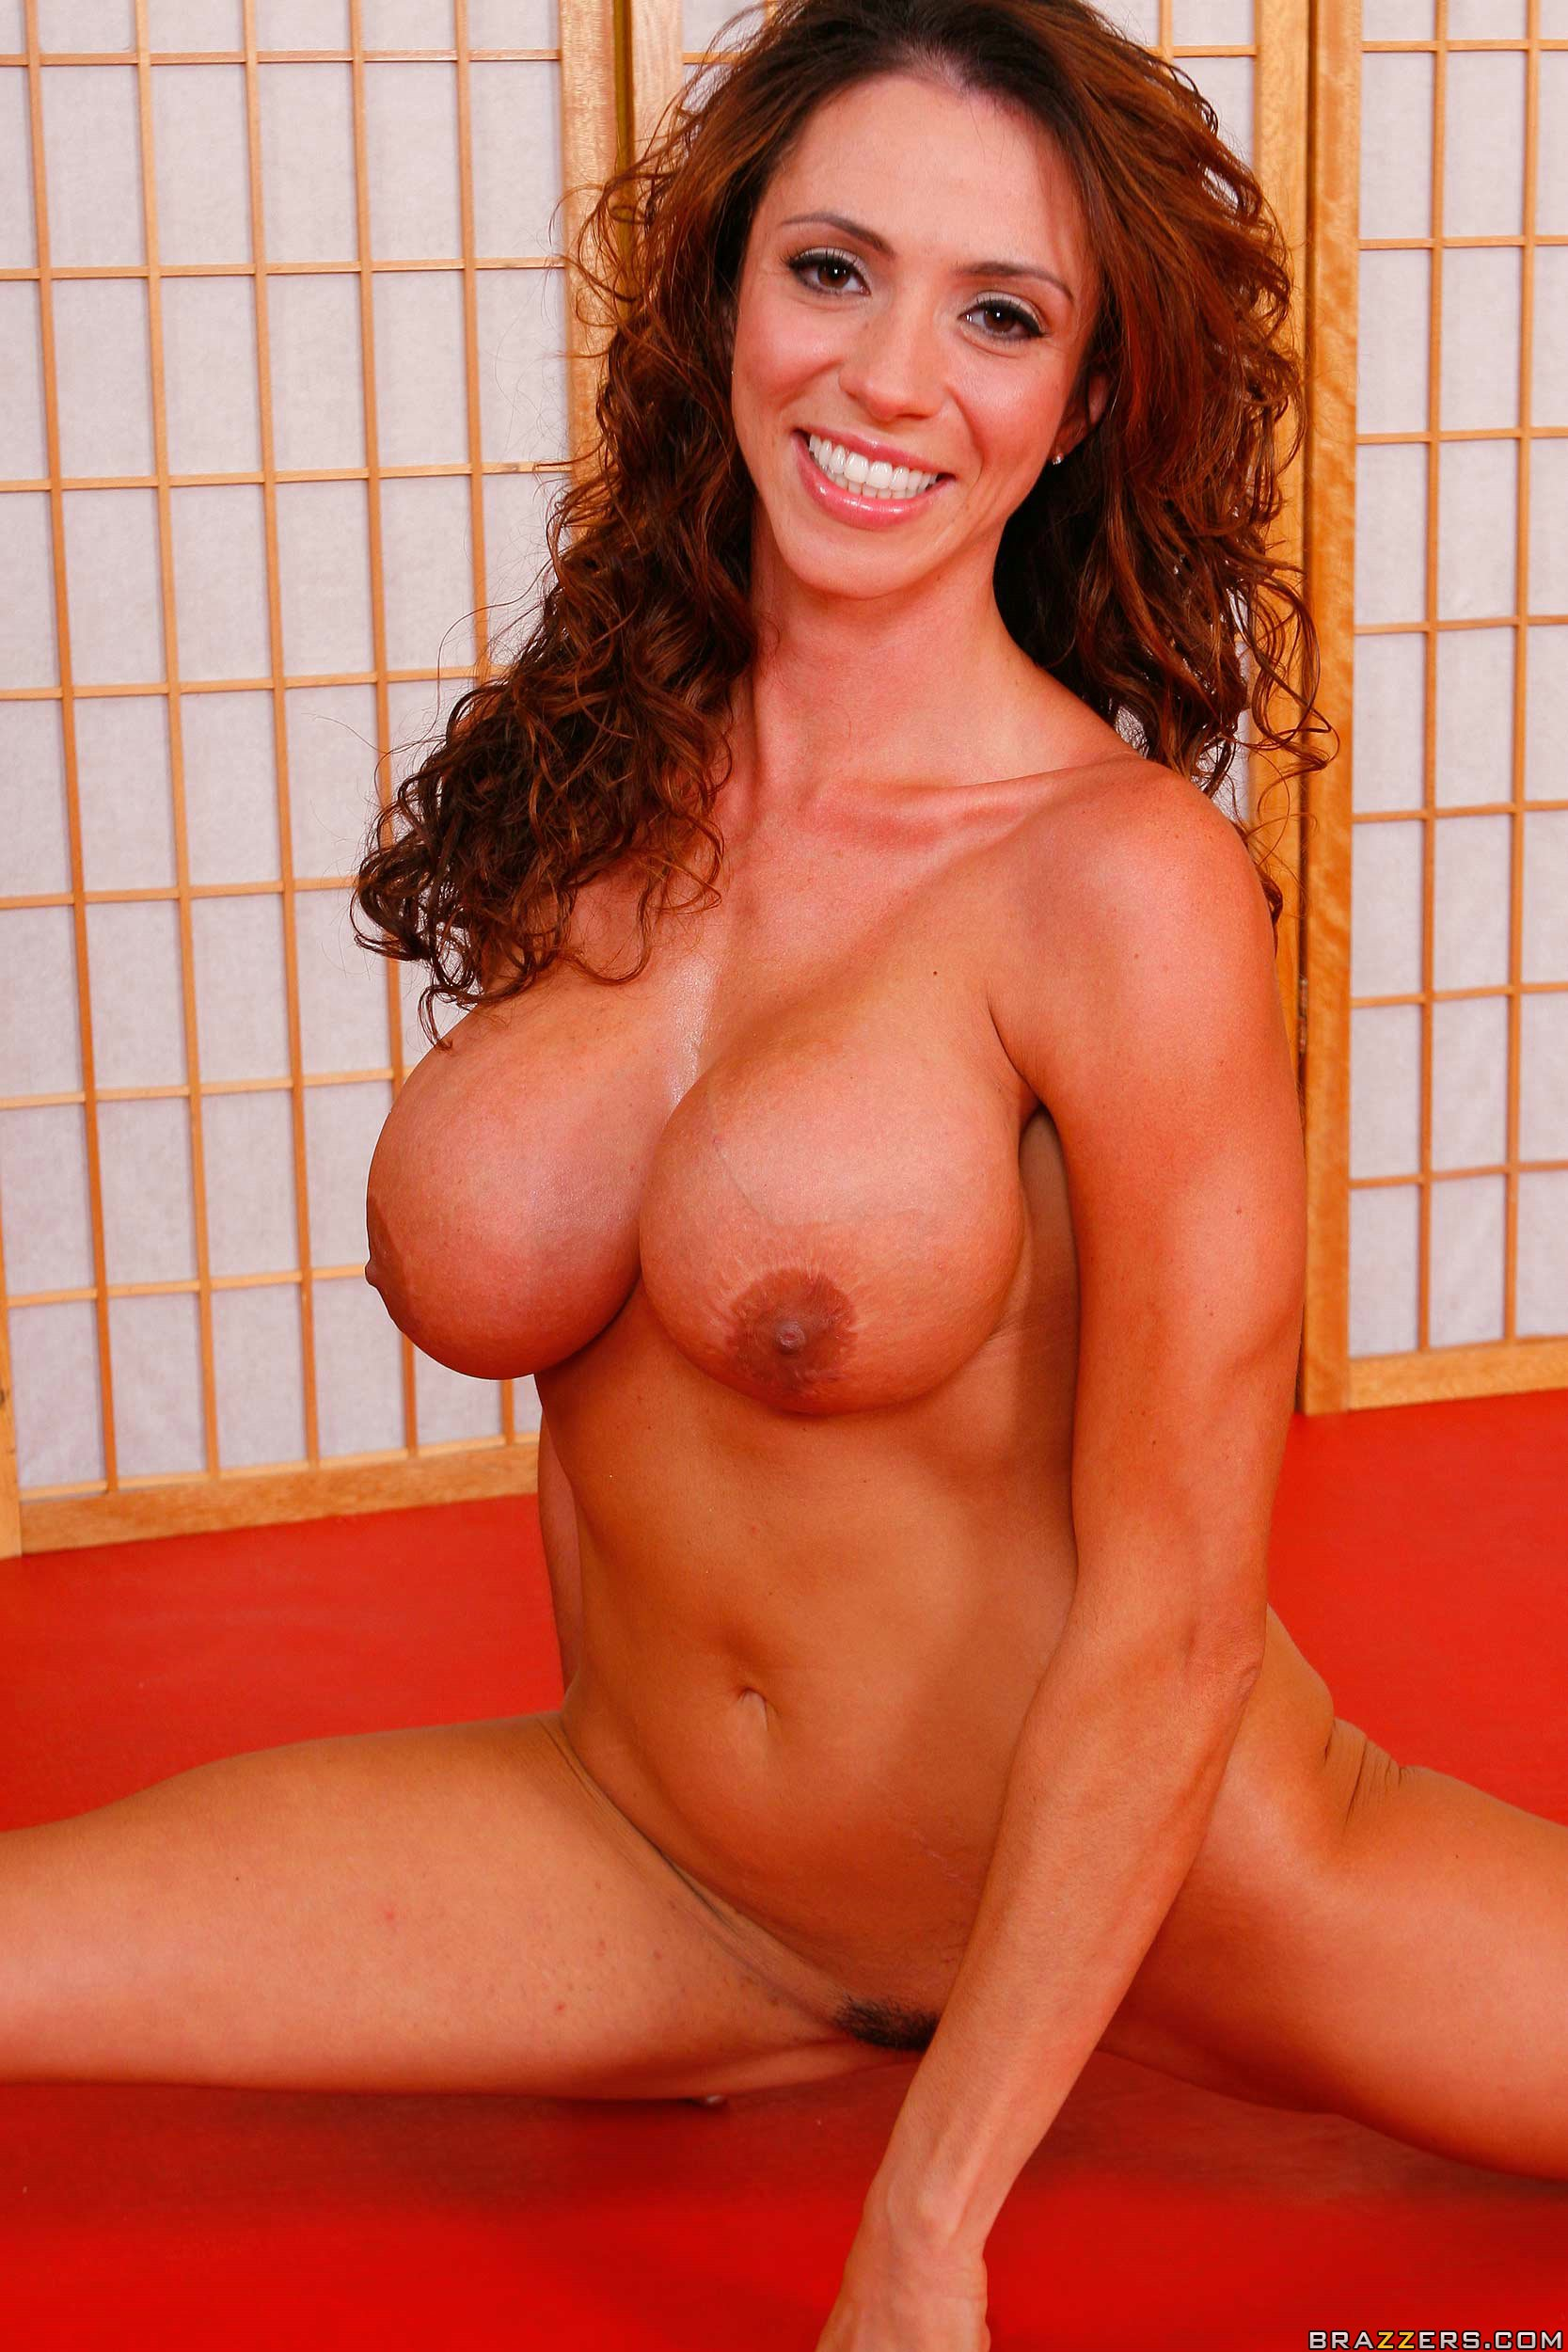 Ariella ferrera big tits sports